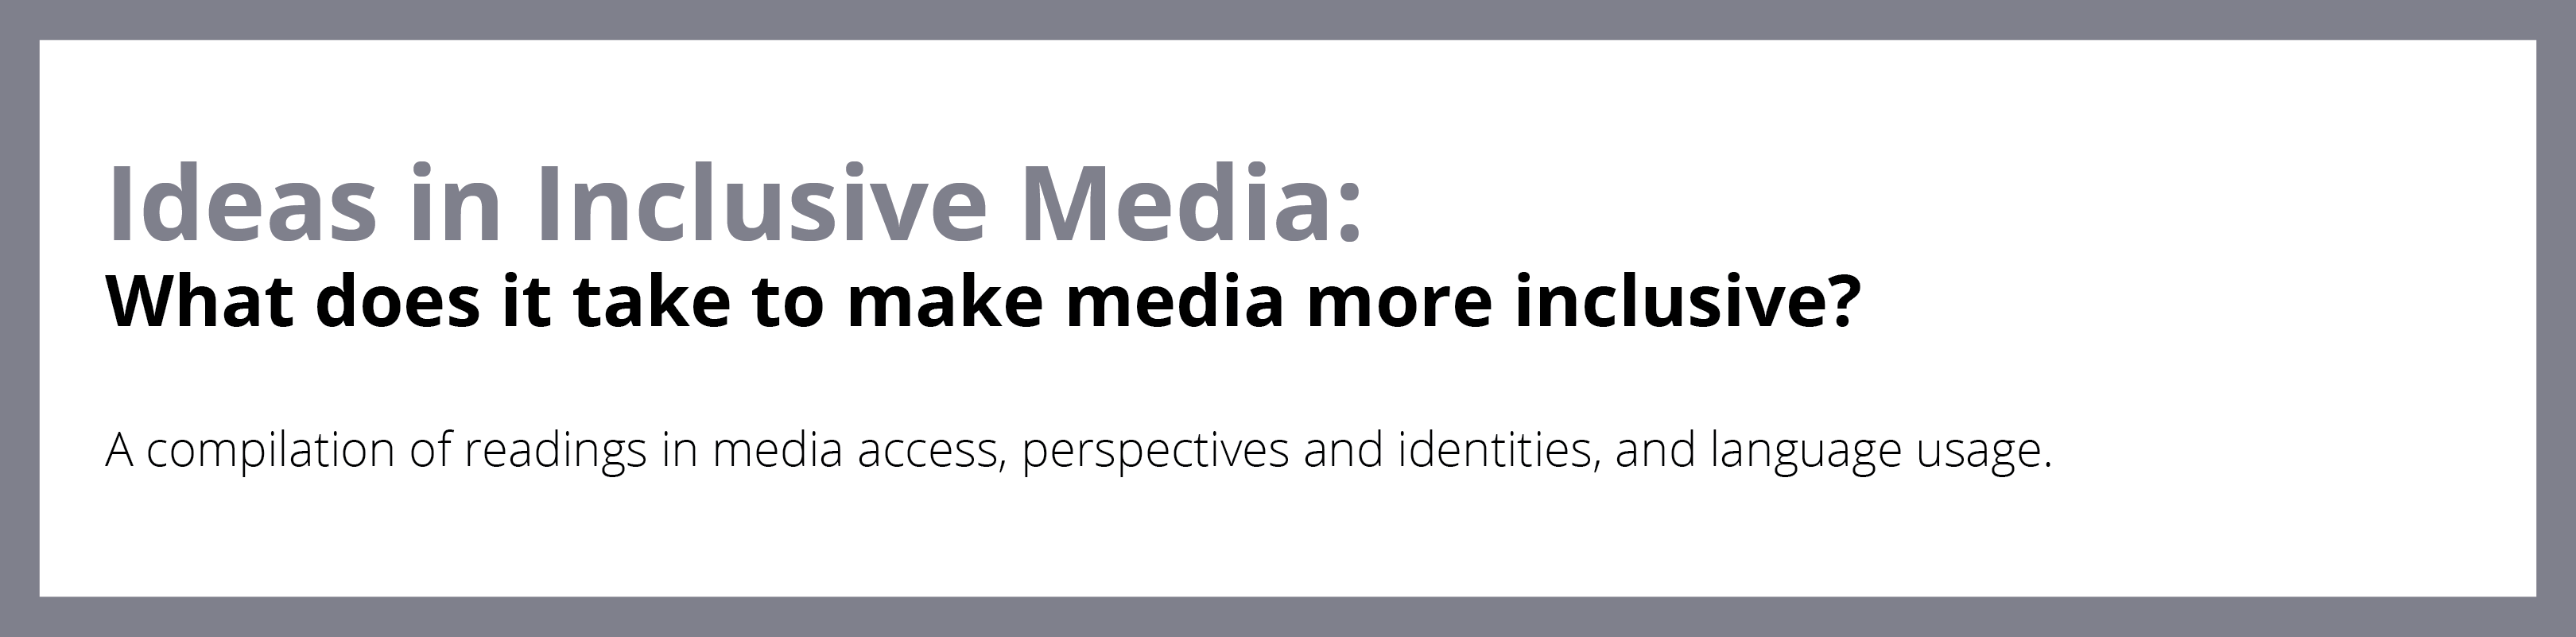 Ideas in Inclusive Media: What does it take to make media more inclusive? Download the PDF.